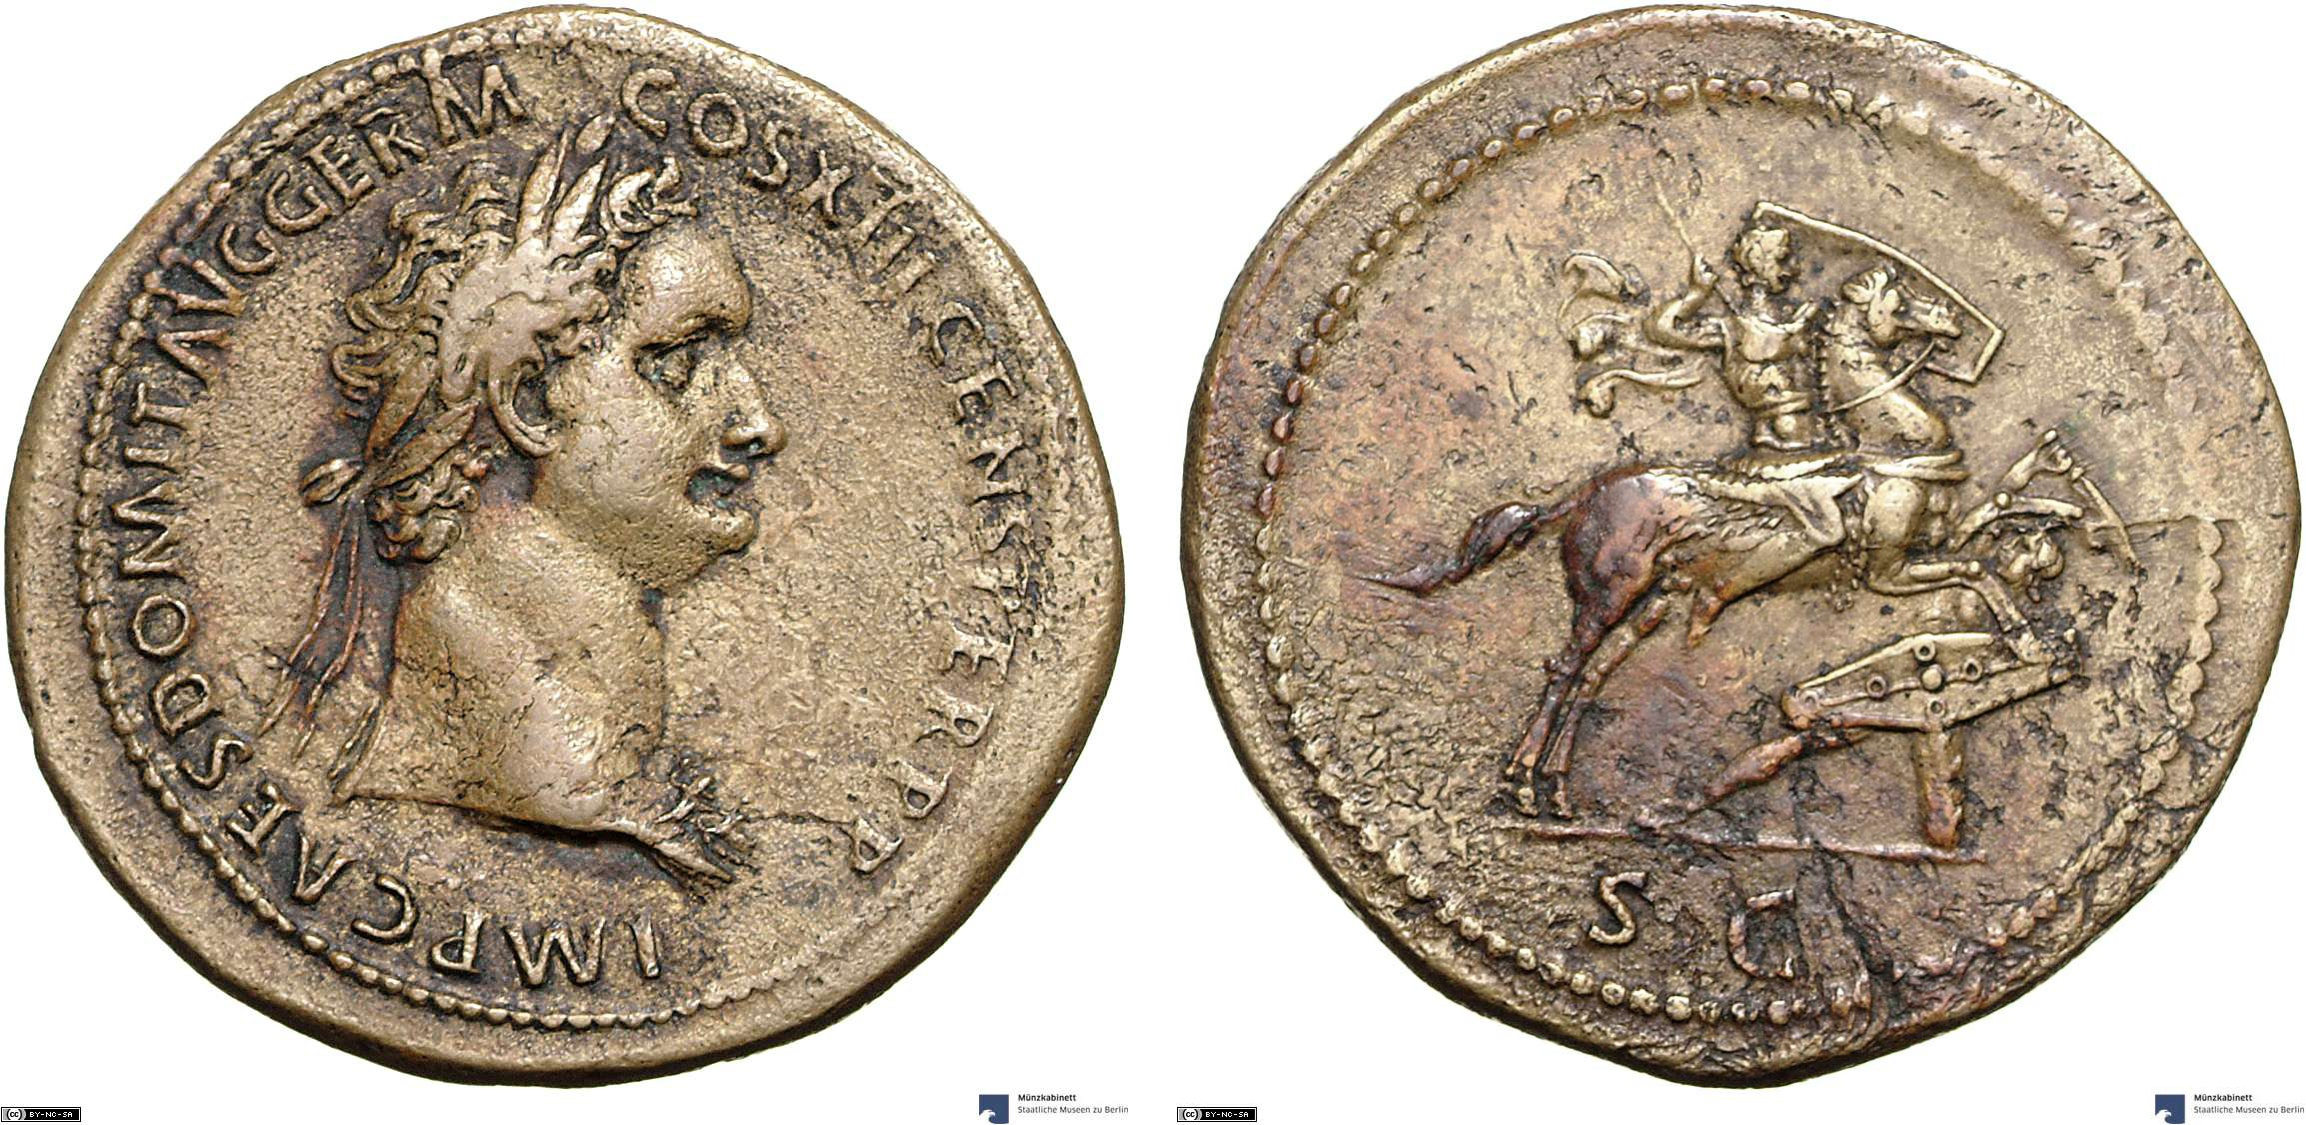 Sestertius showing the emperor on horseback on reverse, minted in 87 AD under Domitian, Roman Empire